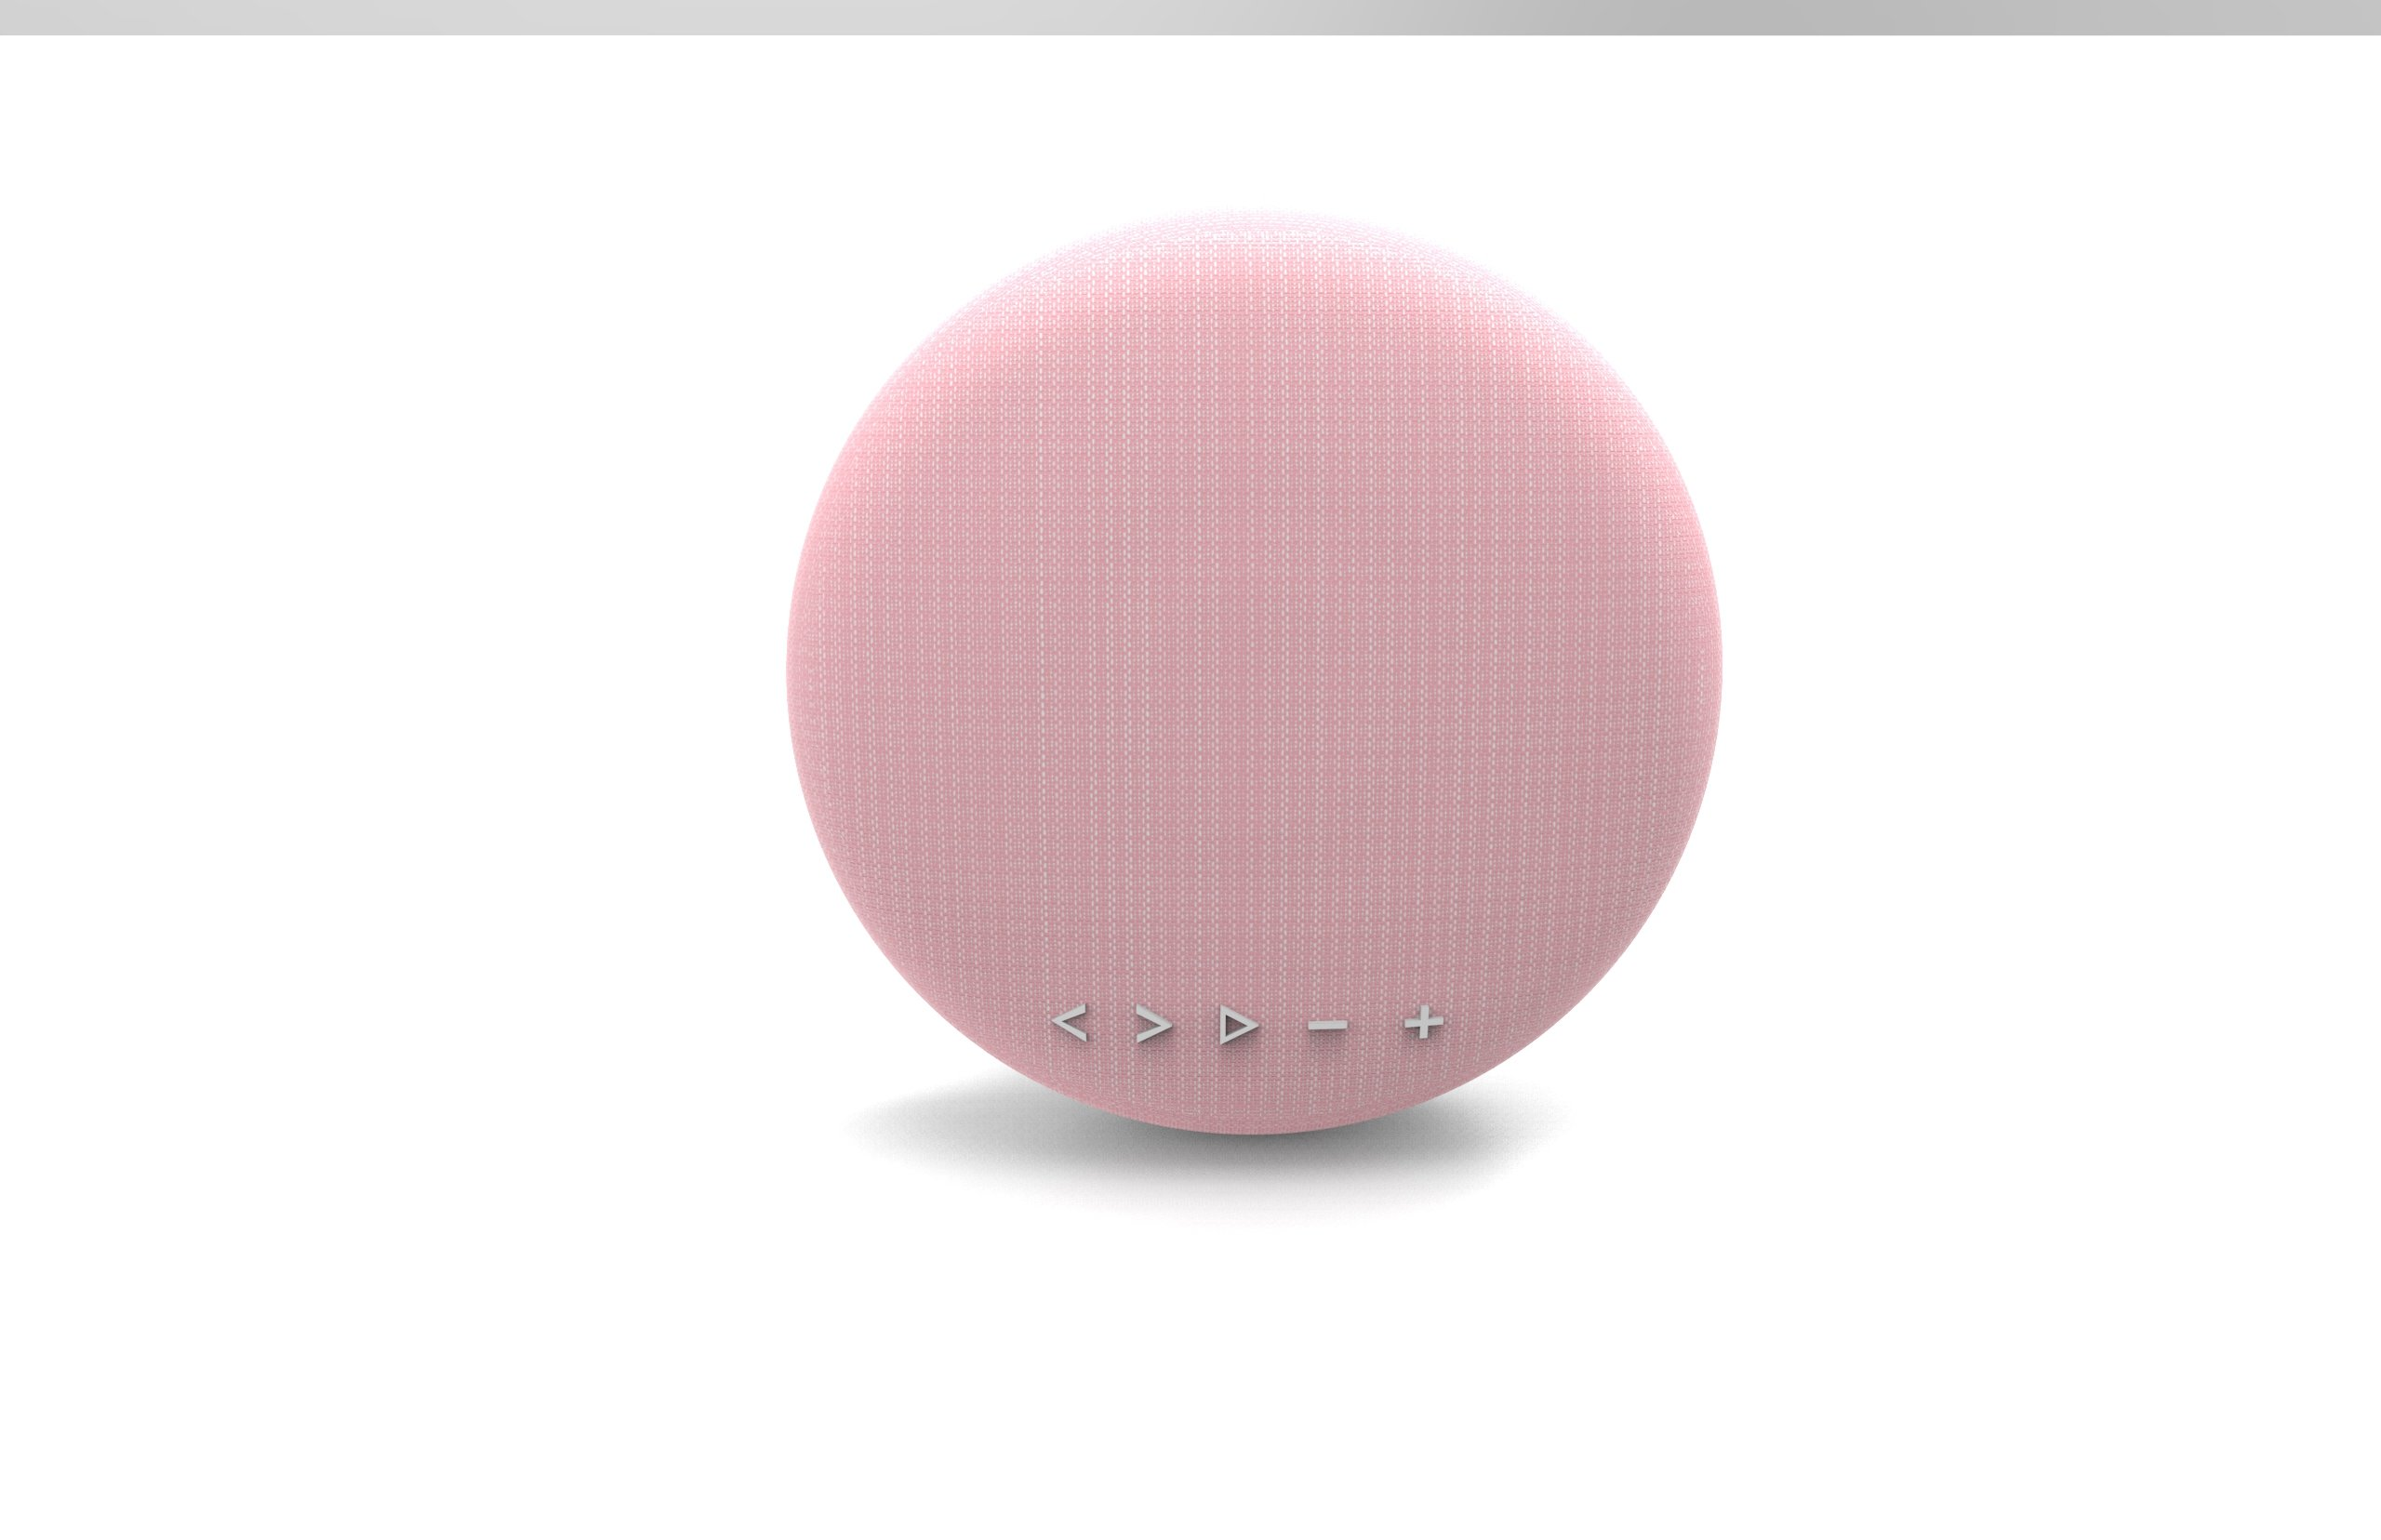 High Fidelity Tech-Luxury Portable Bluetooth Wireless Speaker-Best Bluetooth speaker for home and outdoors-With stand and carry strap-Light Pink Color